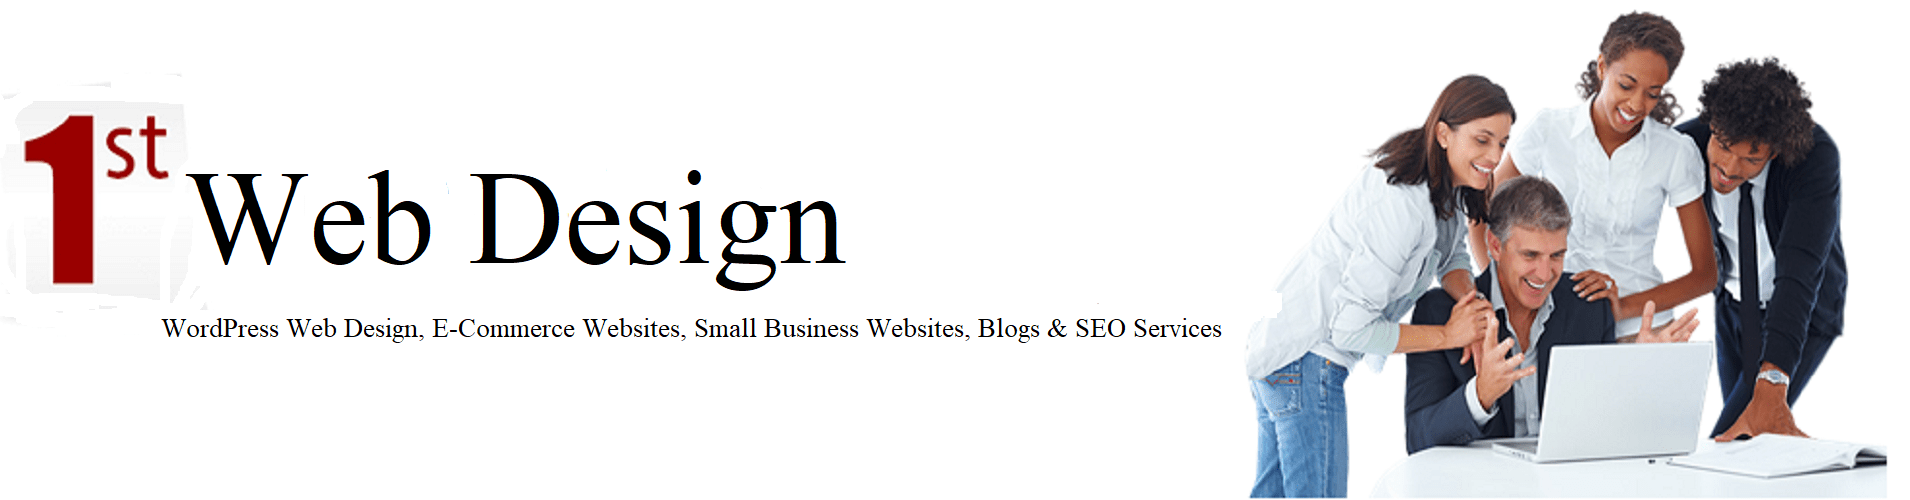 1st Web Design